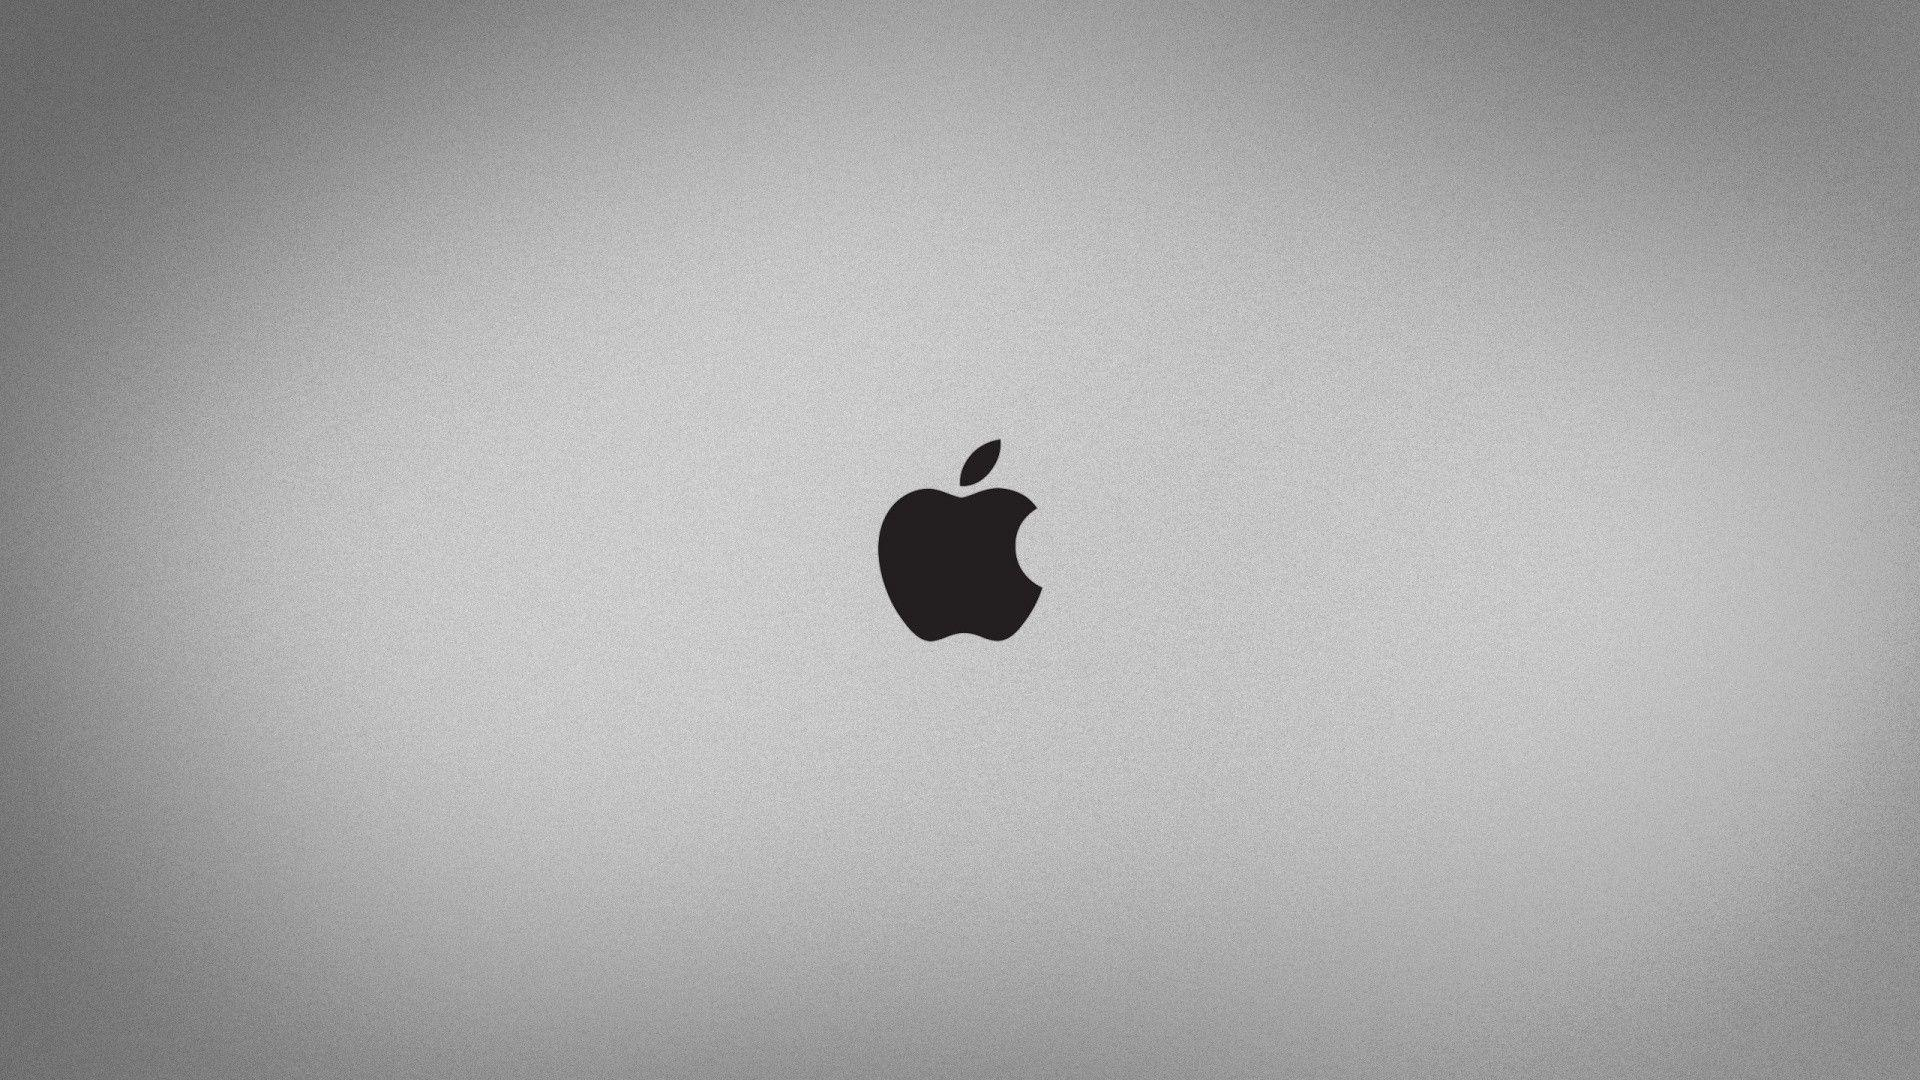 imac wallpapers hd wallpaper cave